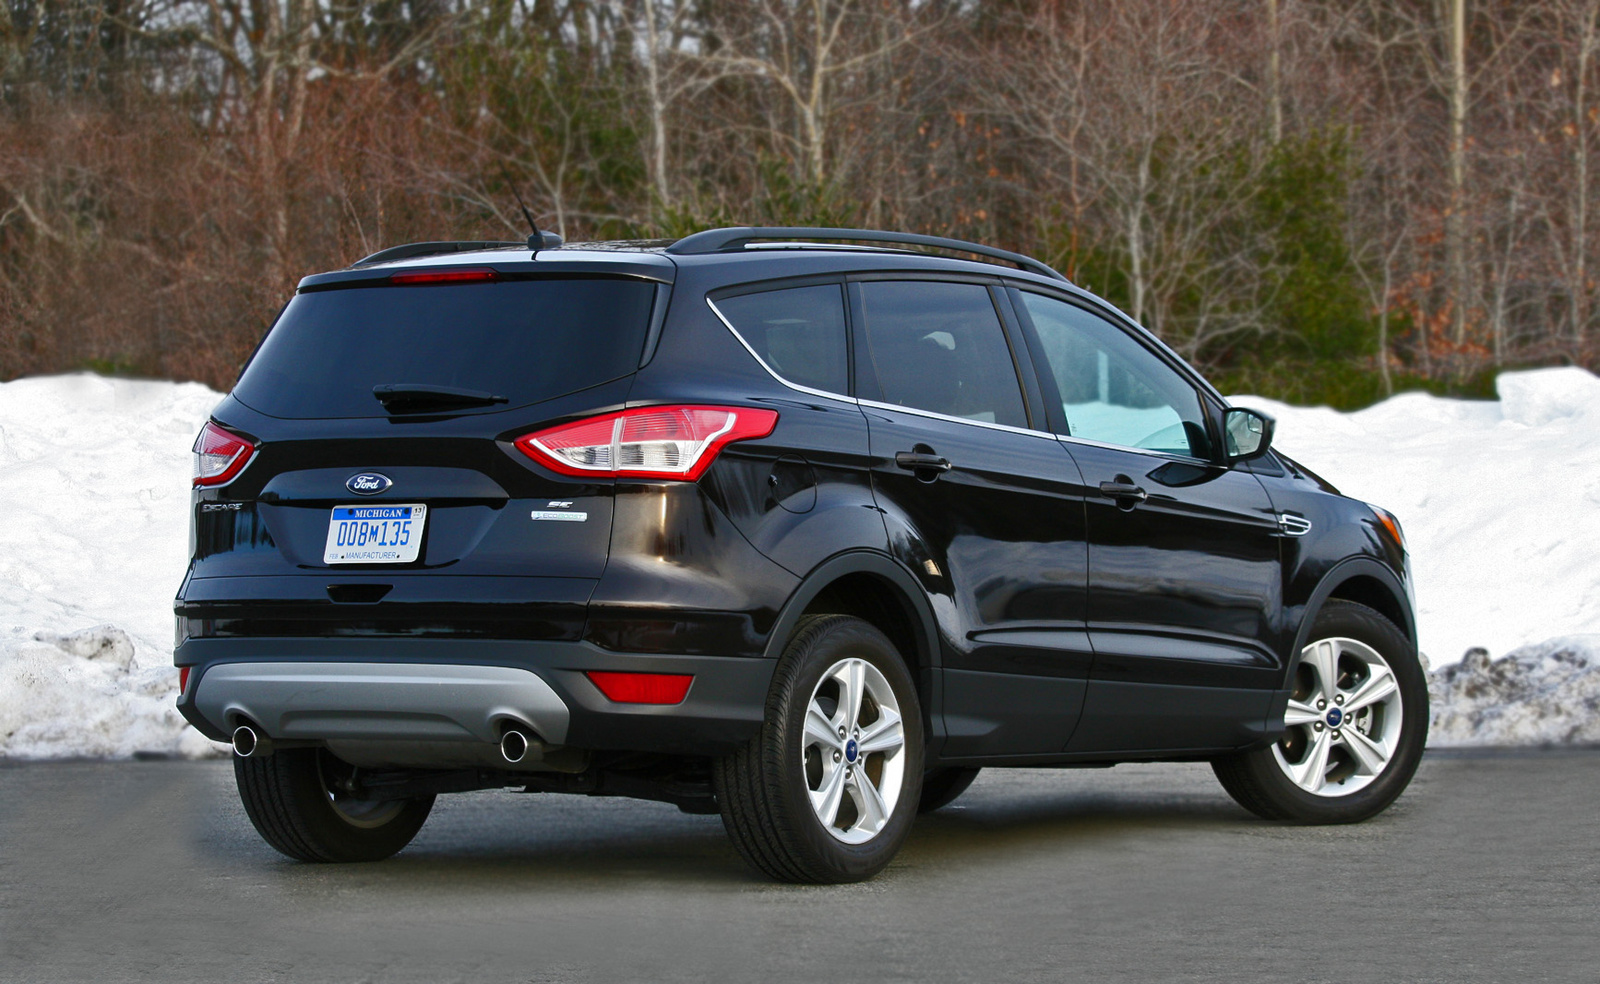 2013 Ford Escape, Rear-quarter view, exterior, cost_effectiveness